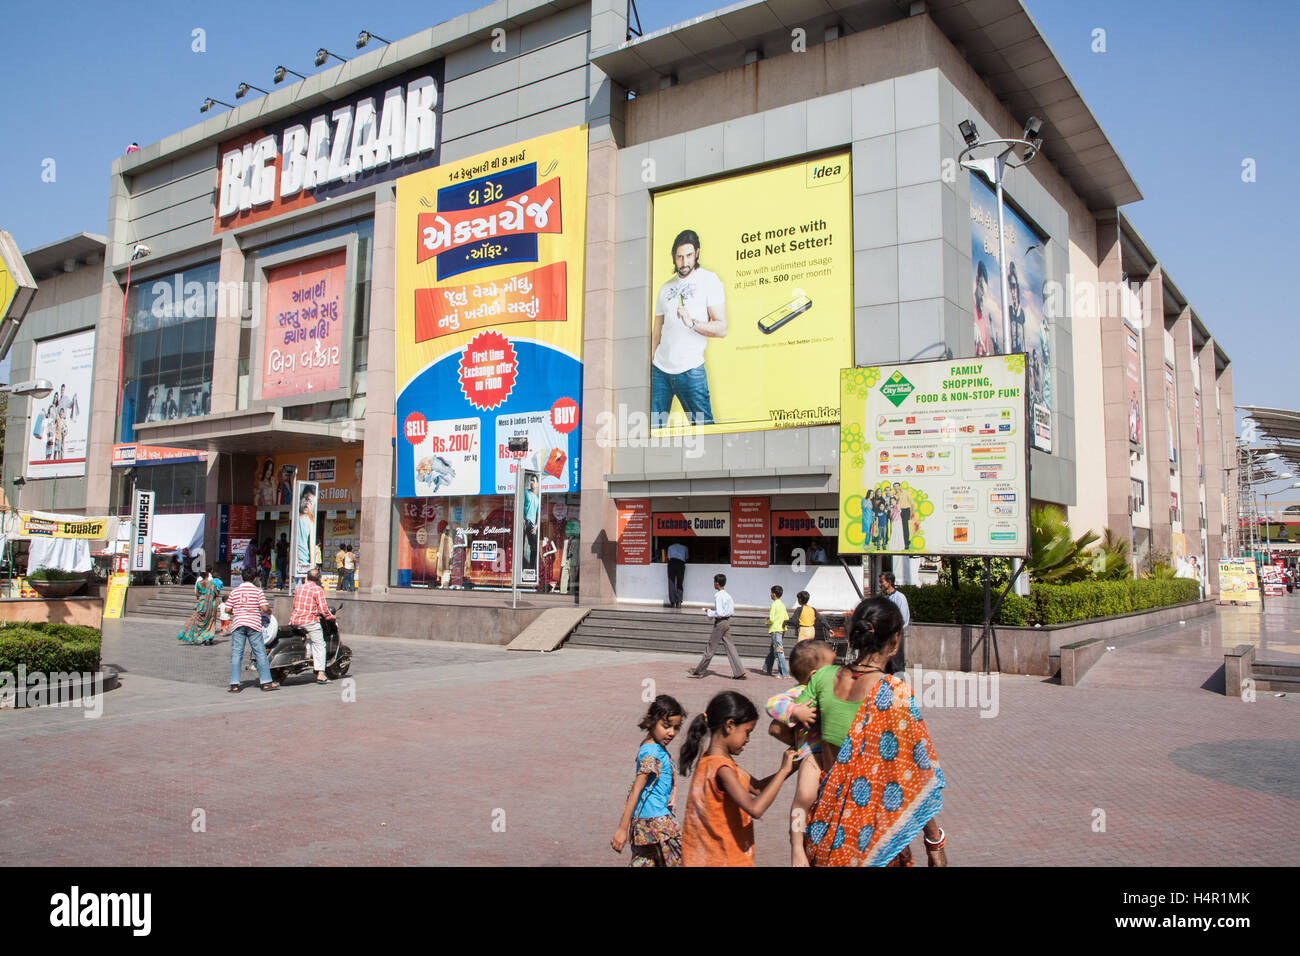 At Ahmedabad City Mall with shops including Big Bazaar shopping mall,Ahmedabad,Gujurat,India,Asia, - Stock Image